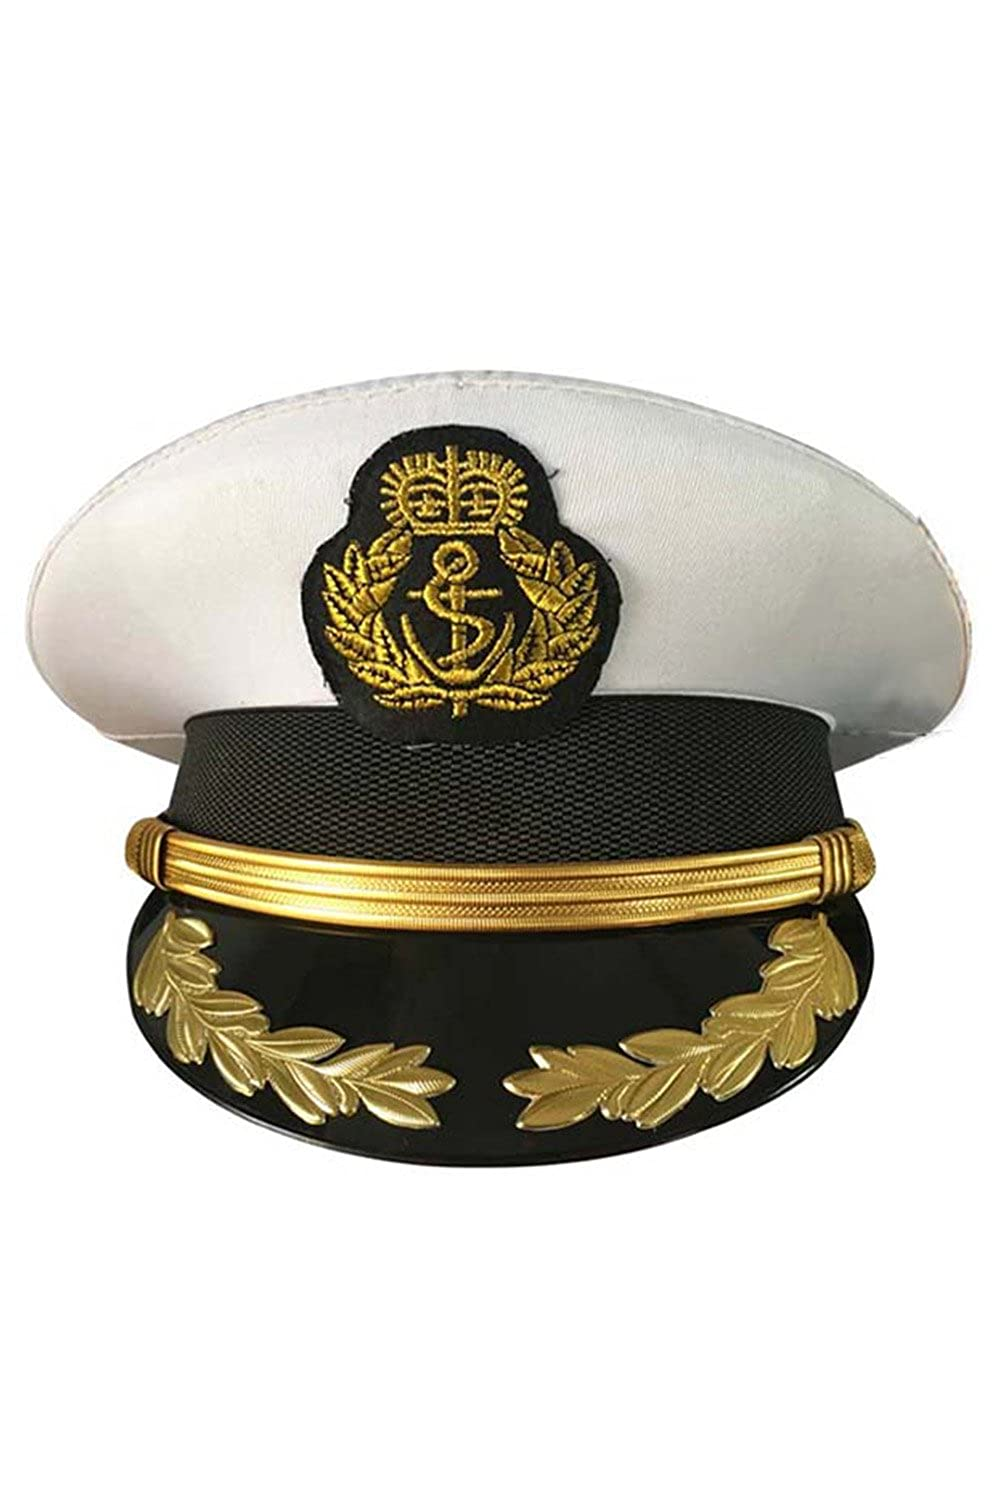 CHECKIN Custom Military Costume Admiral Hats Navy Officer Cap Yacht Captain's Hat Sailor Cap